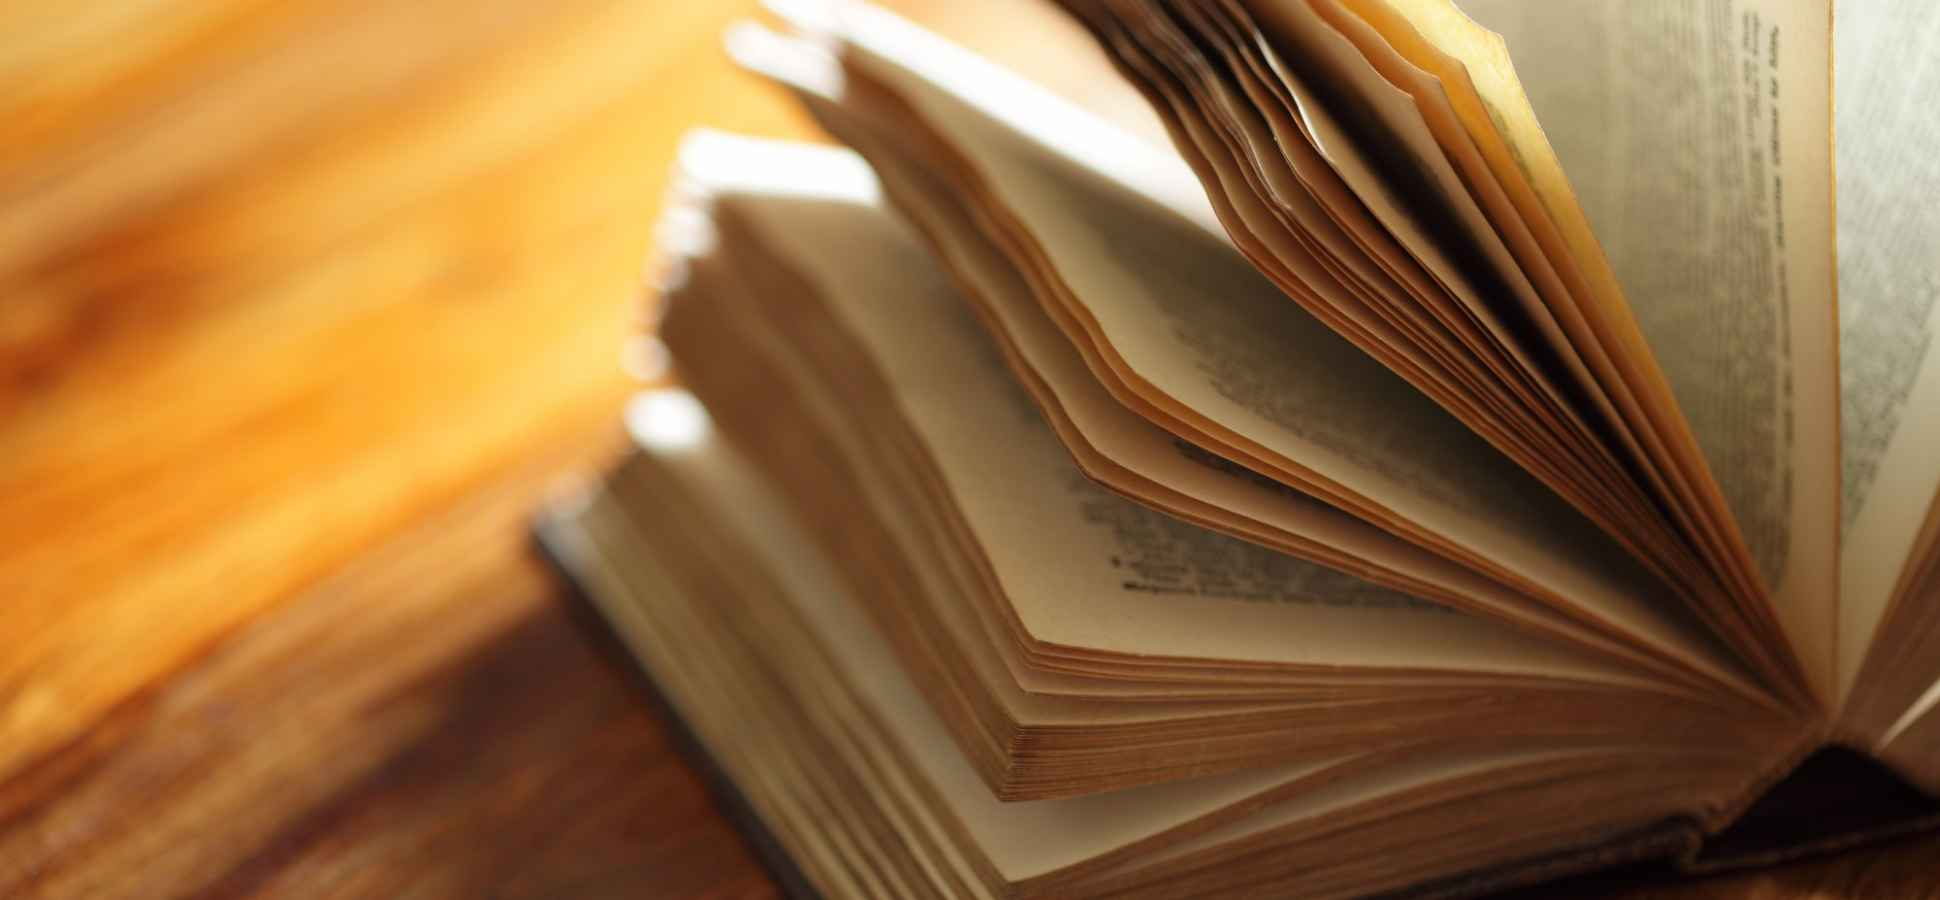 10 Literary Classics Every Business Leader Should Read